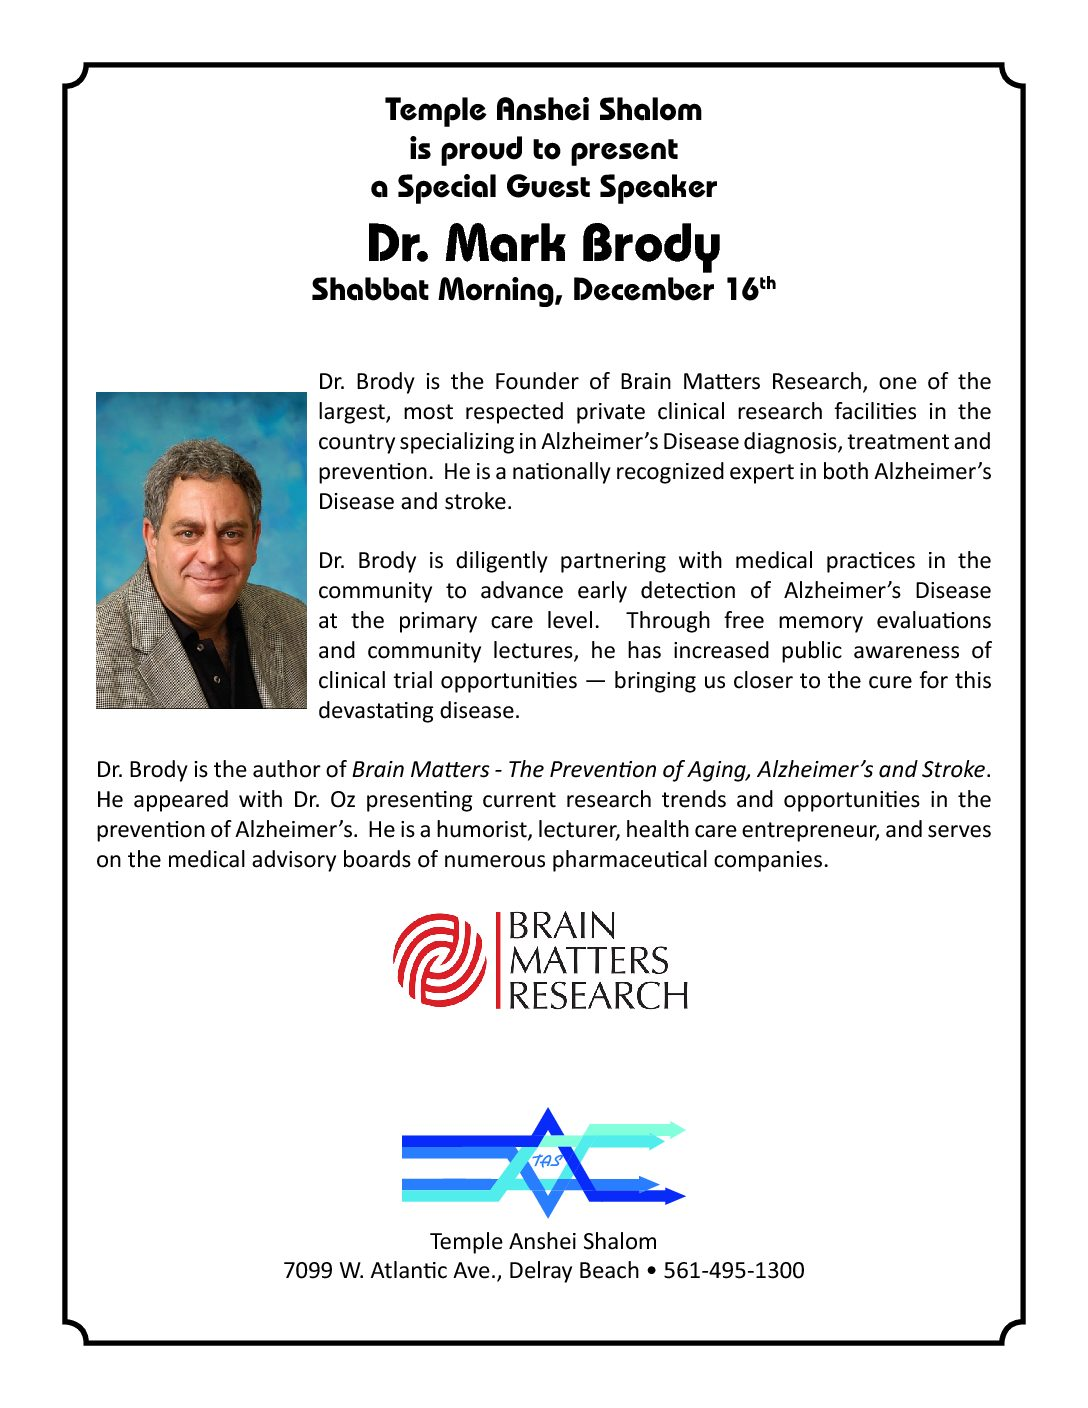 Special Guest Speaker: Dr. Mark Brody